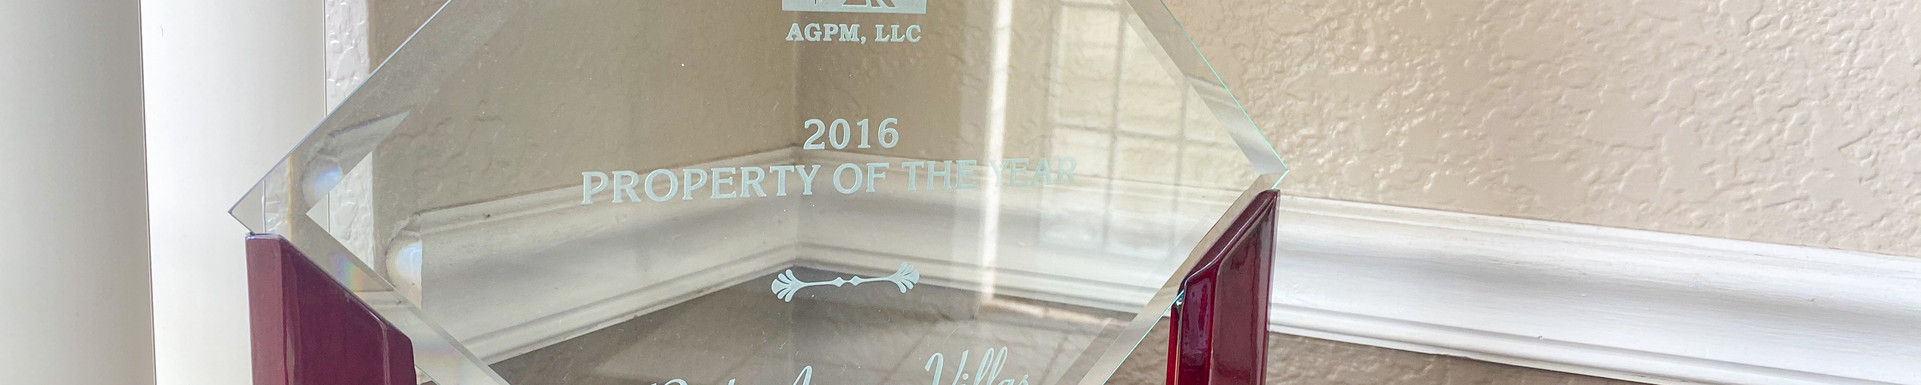 2016 AGPM Property of the Year